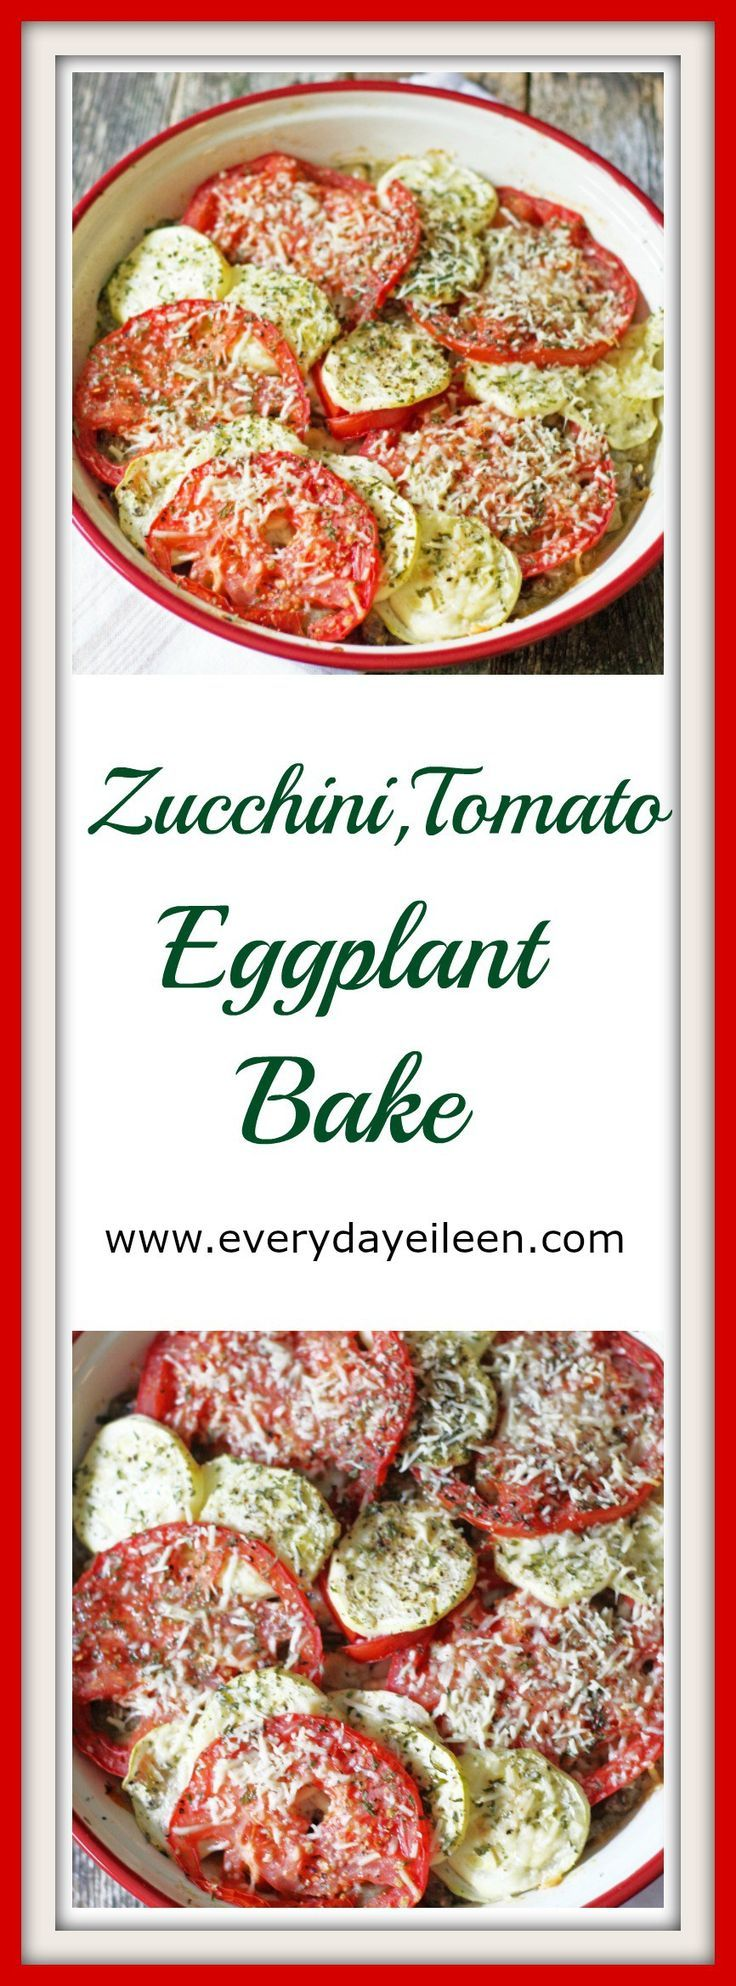 Zucchini, Tomato, Eggplant Bake is a low-fat and low-carb vegetarian meal! Super tasty and easy to prepare!